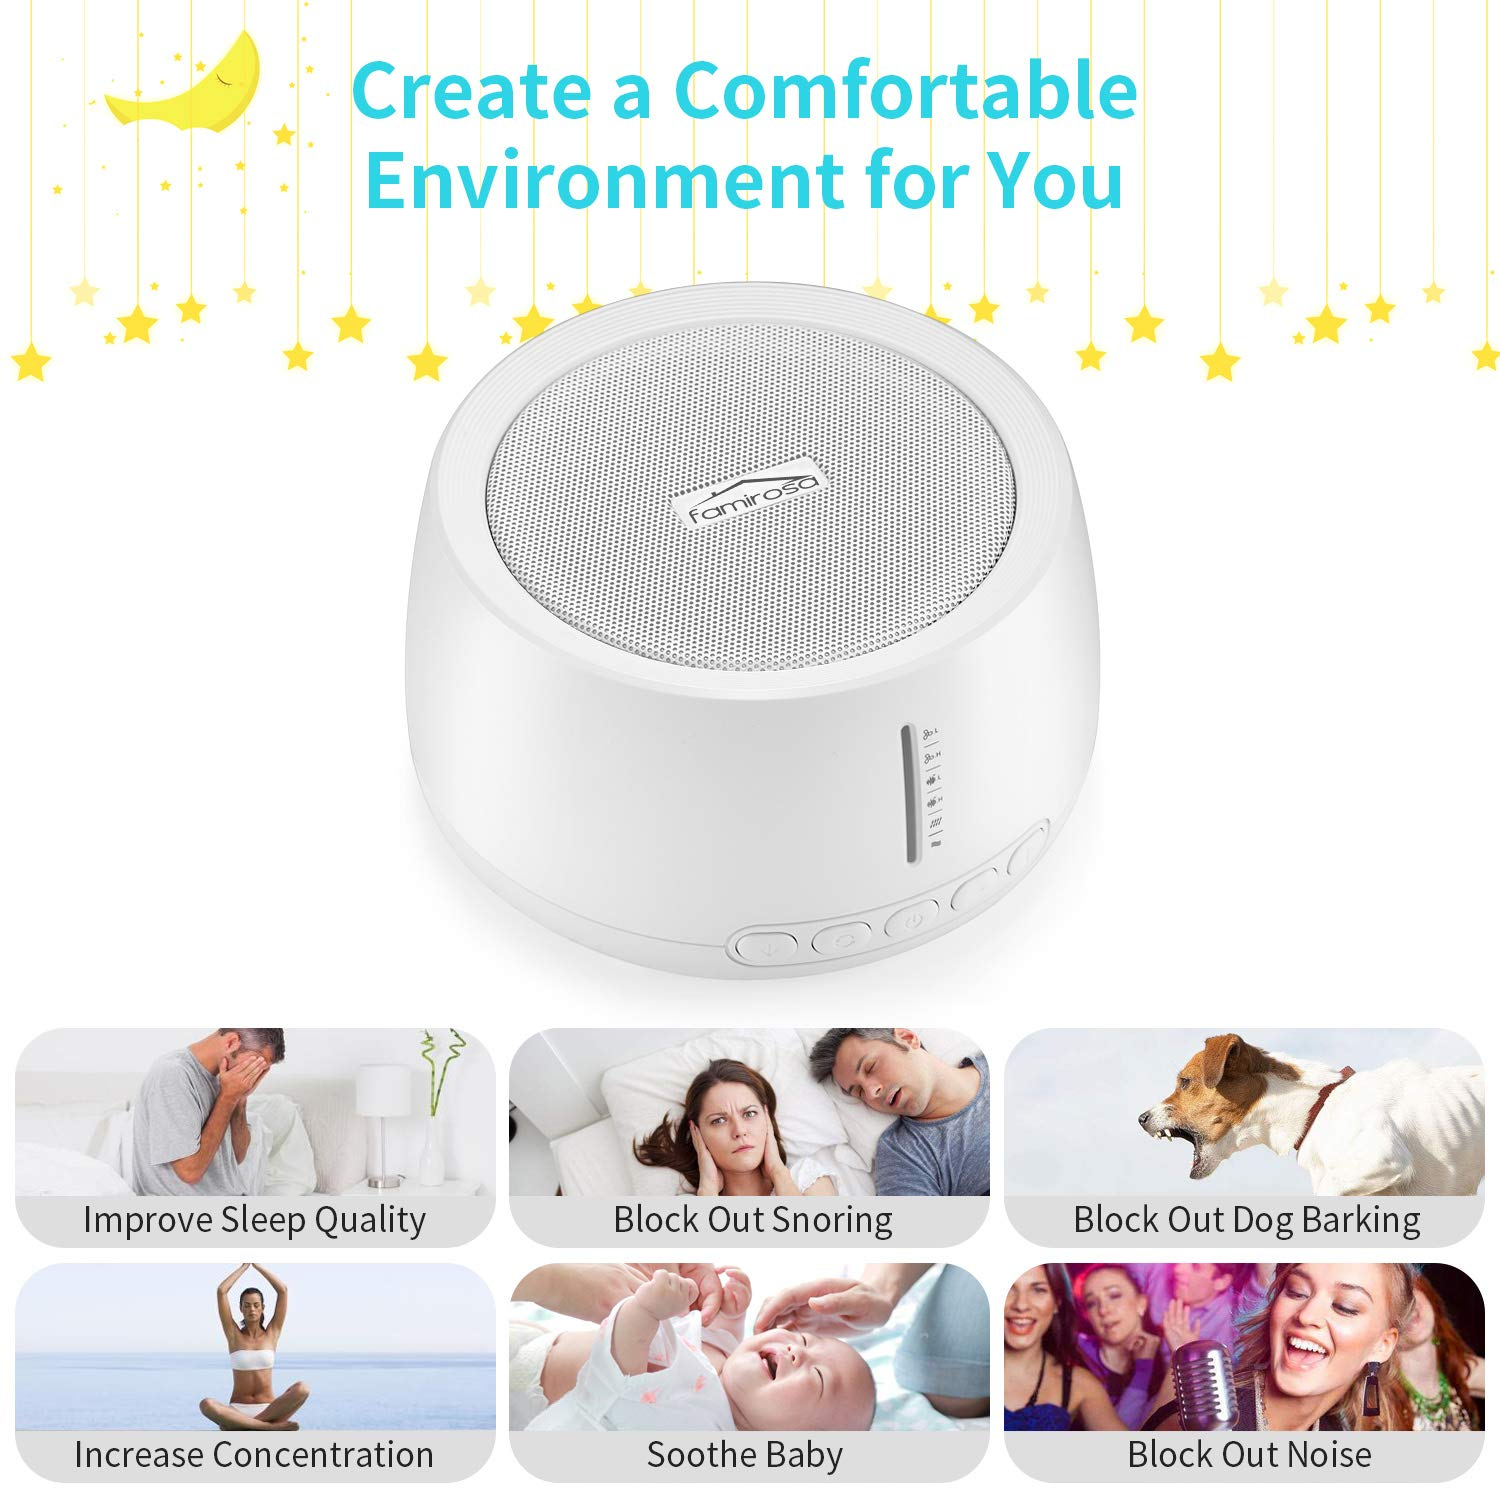 White Noise Sound Machine for Sleeping, FAMIROSA 30 High Fidelity Soothing Sounds with High Quality Speaker, Memory Function & Earphone Jack for Baby, Adult, Office, Travel with Fan & Nature Sounds